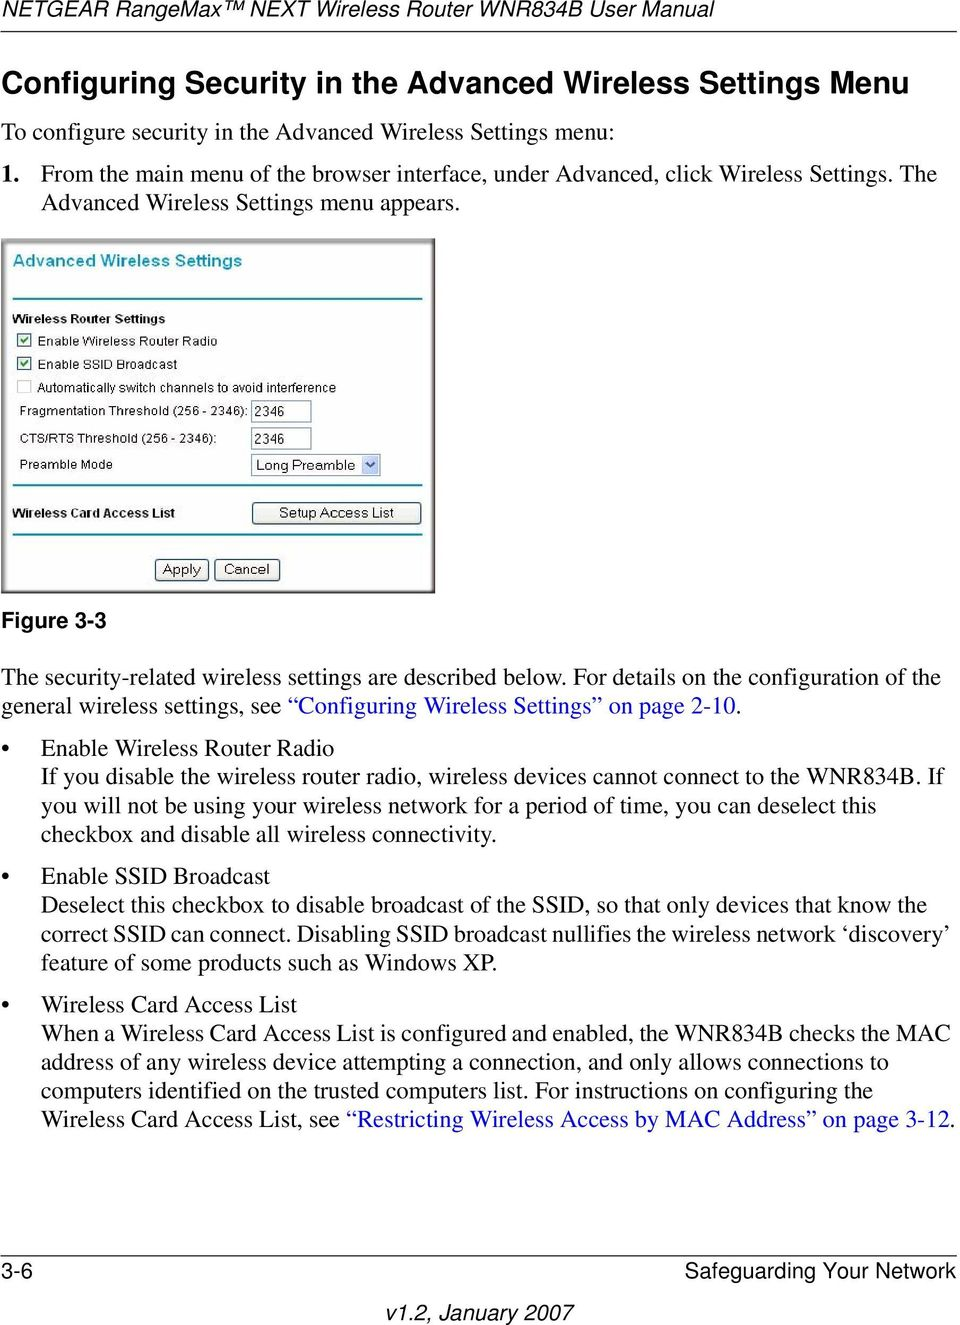 Figure 3-3 The security-related wireless settings are described below. For details on the configuration of the general wireless settings, see Configuring Wireless Settings on page 2-10.